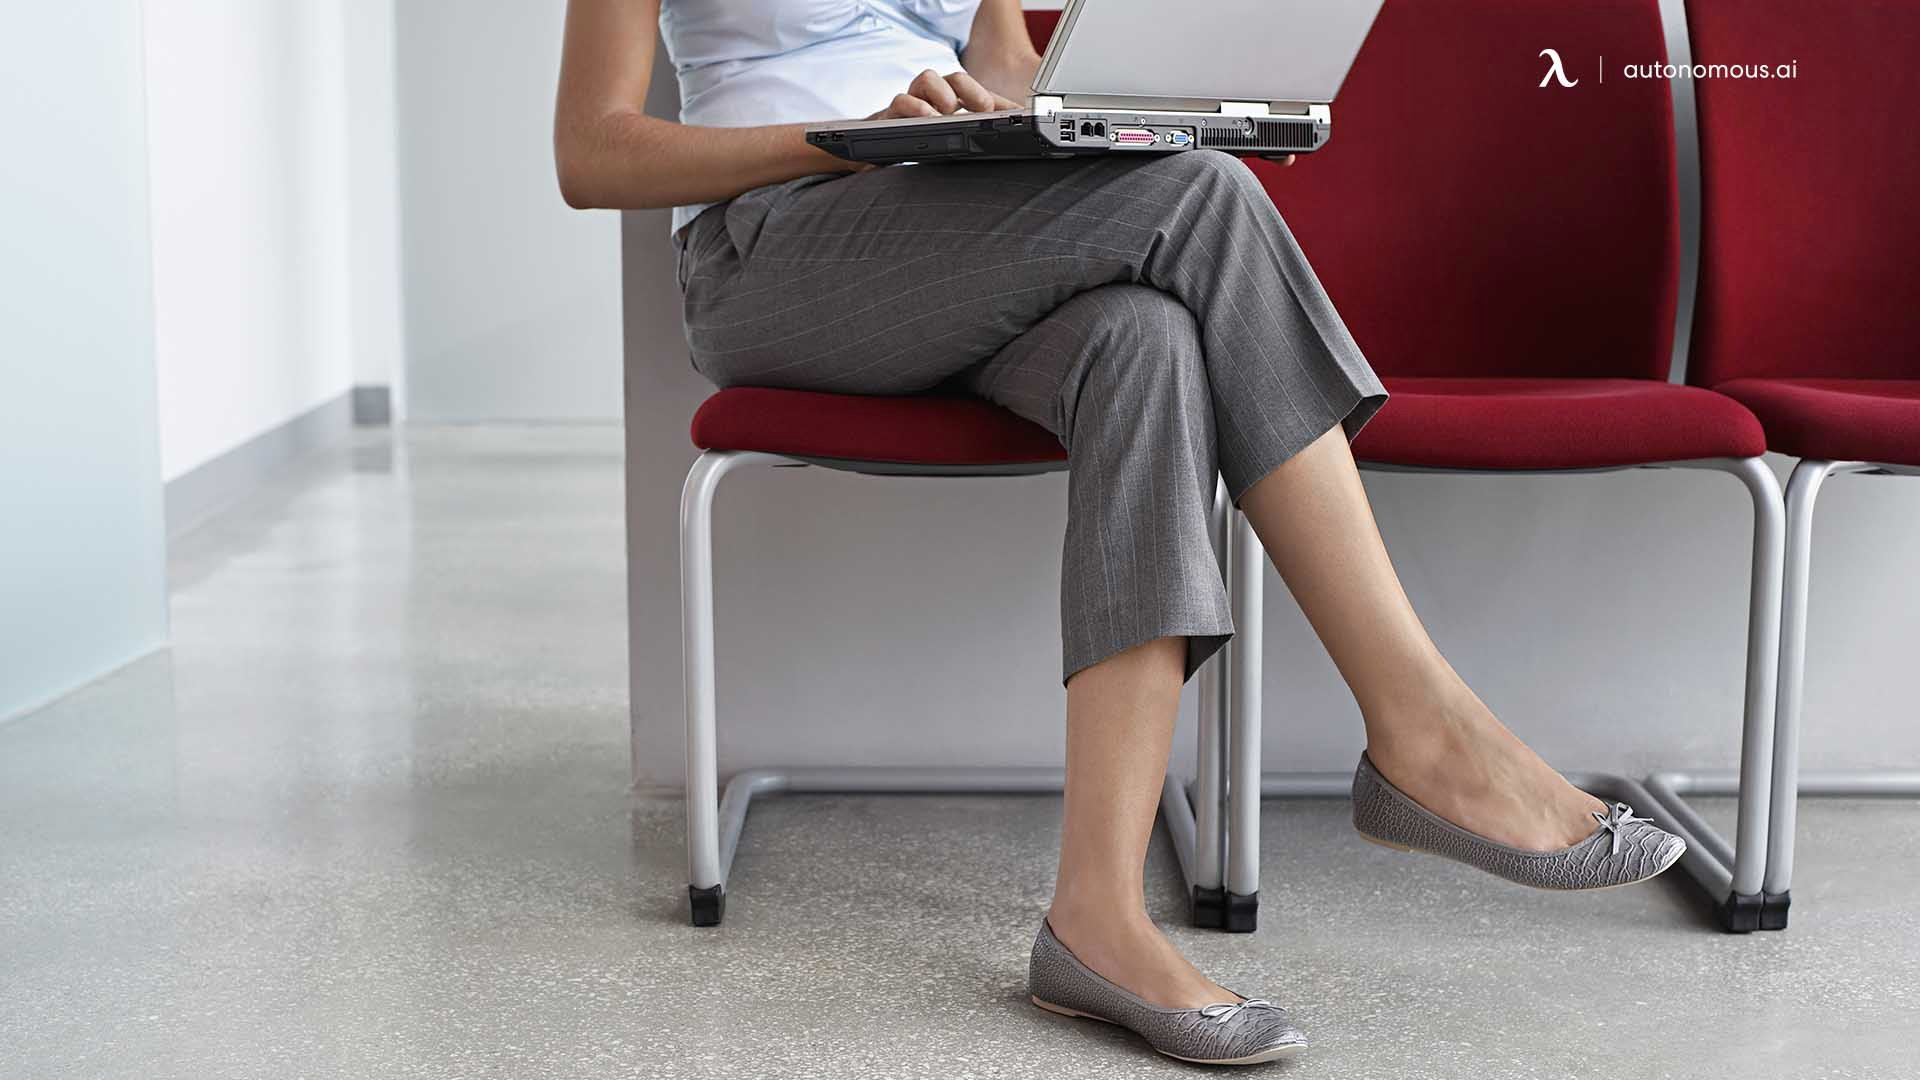 Is It Bad to Sit Cross-Legged in a Chair?